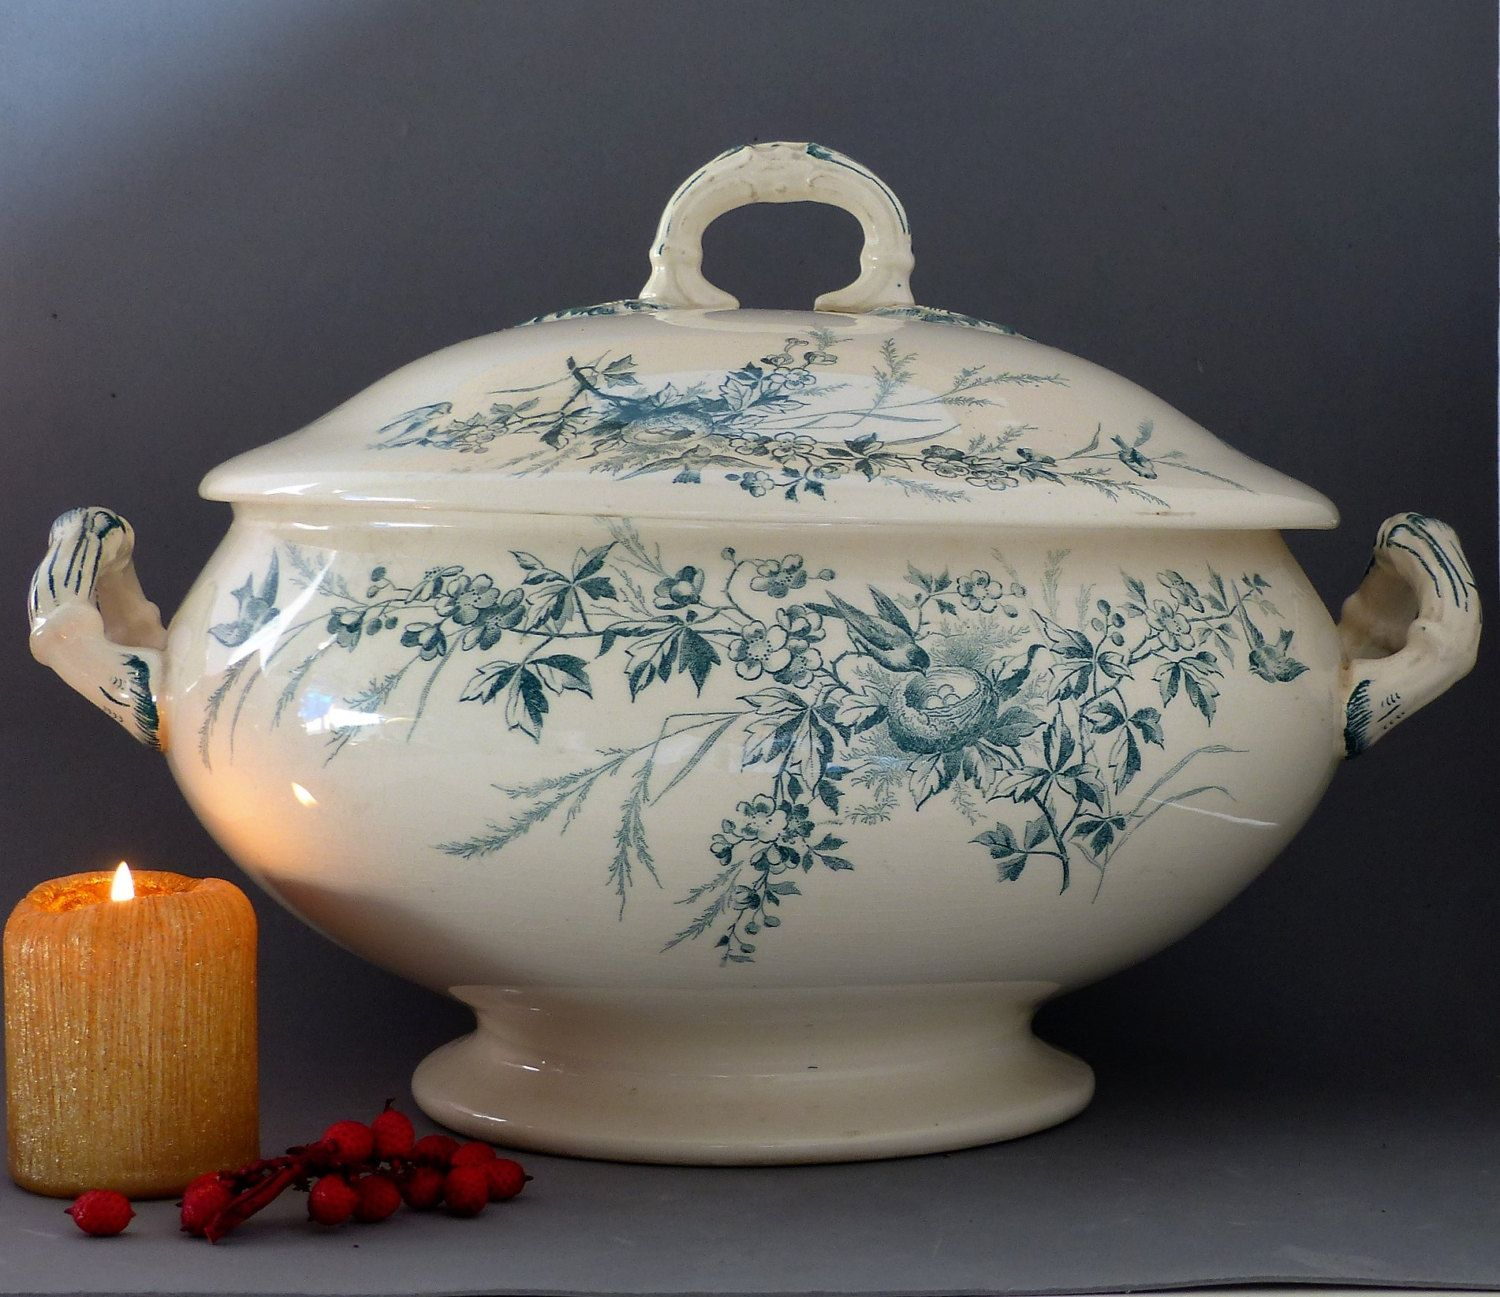 French Vintage Soup Tureen Large Vintage Soup Tureen. Green Cream Floral and Bird Design Soup Tureen. Large Soup Bowl. CHRISTMAS GIFT French by JadisInTimesPast on Etsy